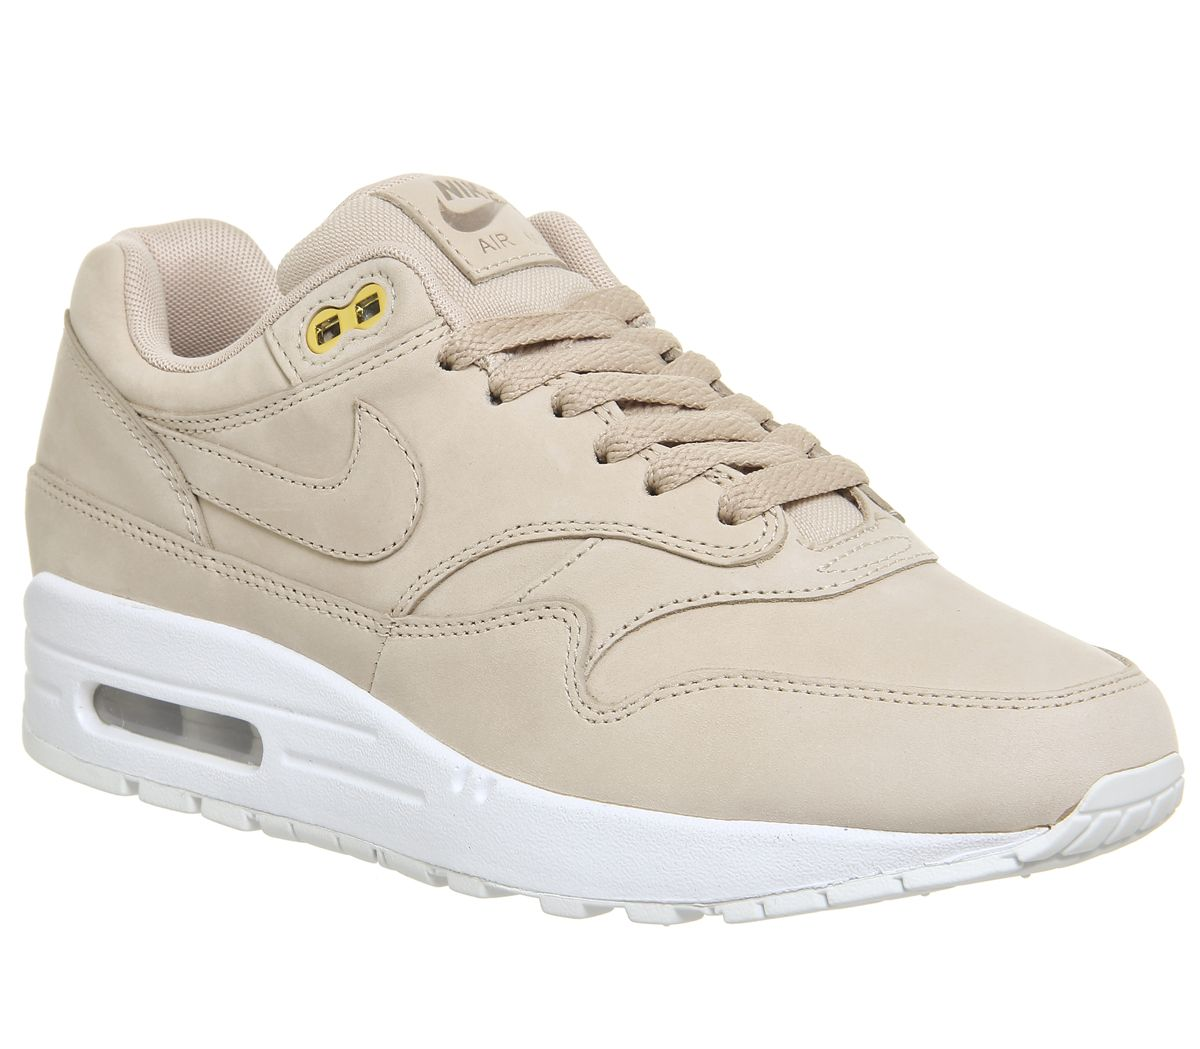 166a180a1c Nike Air Max 1 Trainers Bio Beige White - Hers trainers